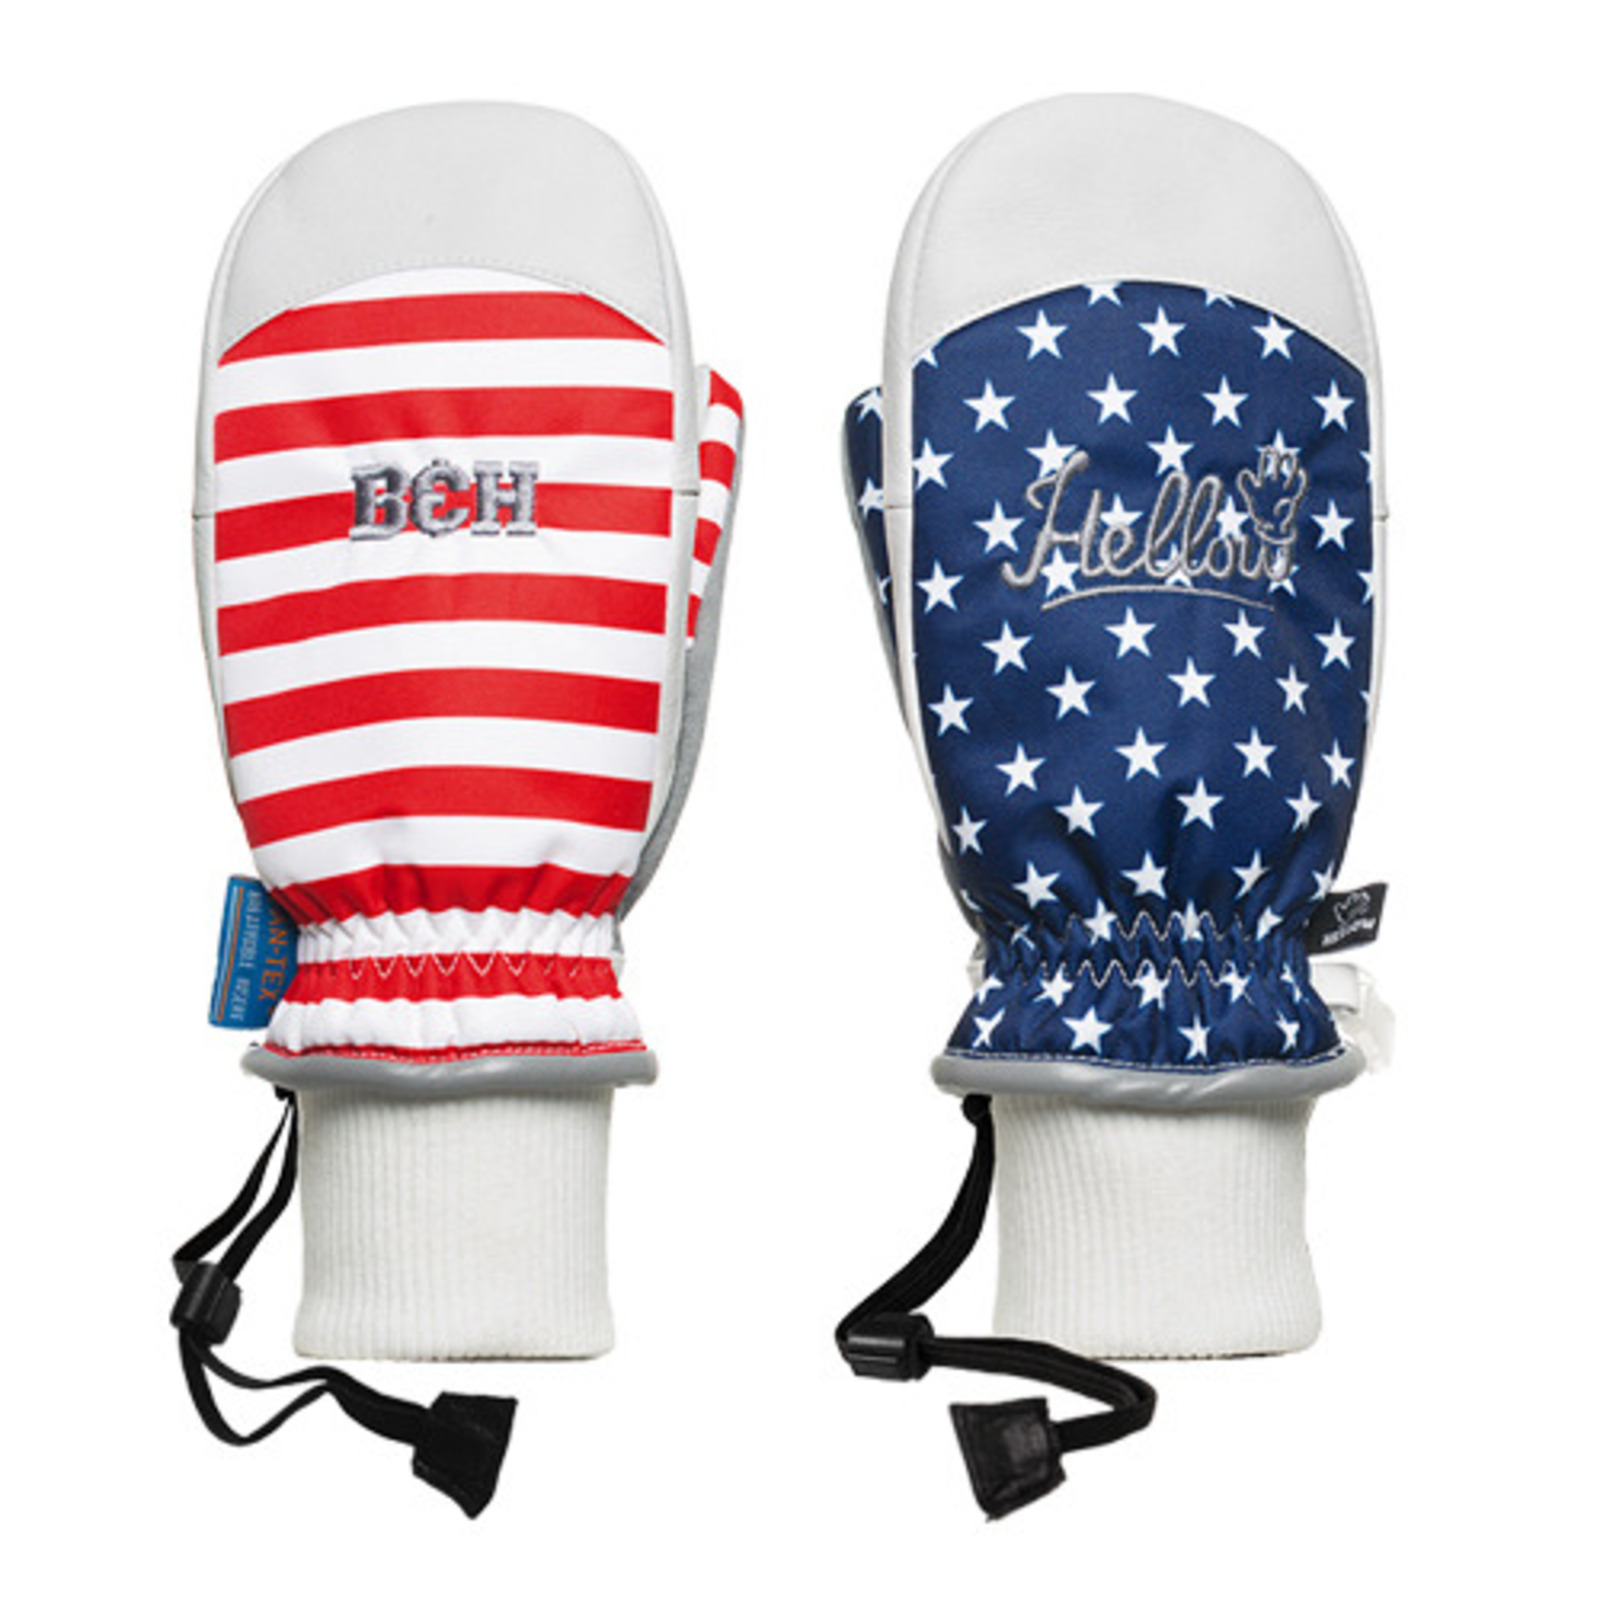 BSRB X HELLOW 2nd Collaboration GLOVE USA